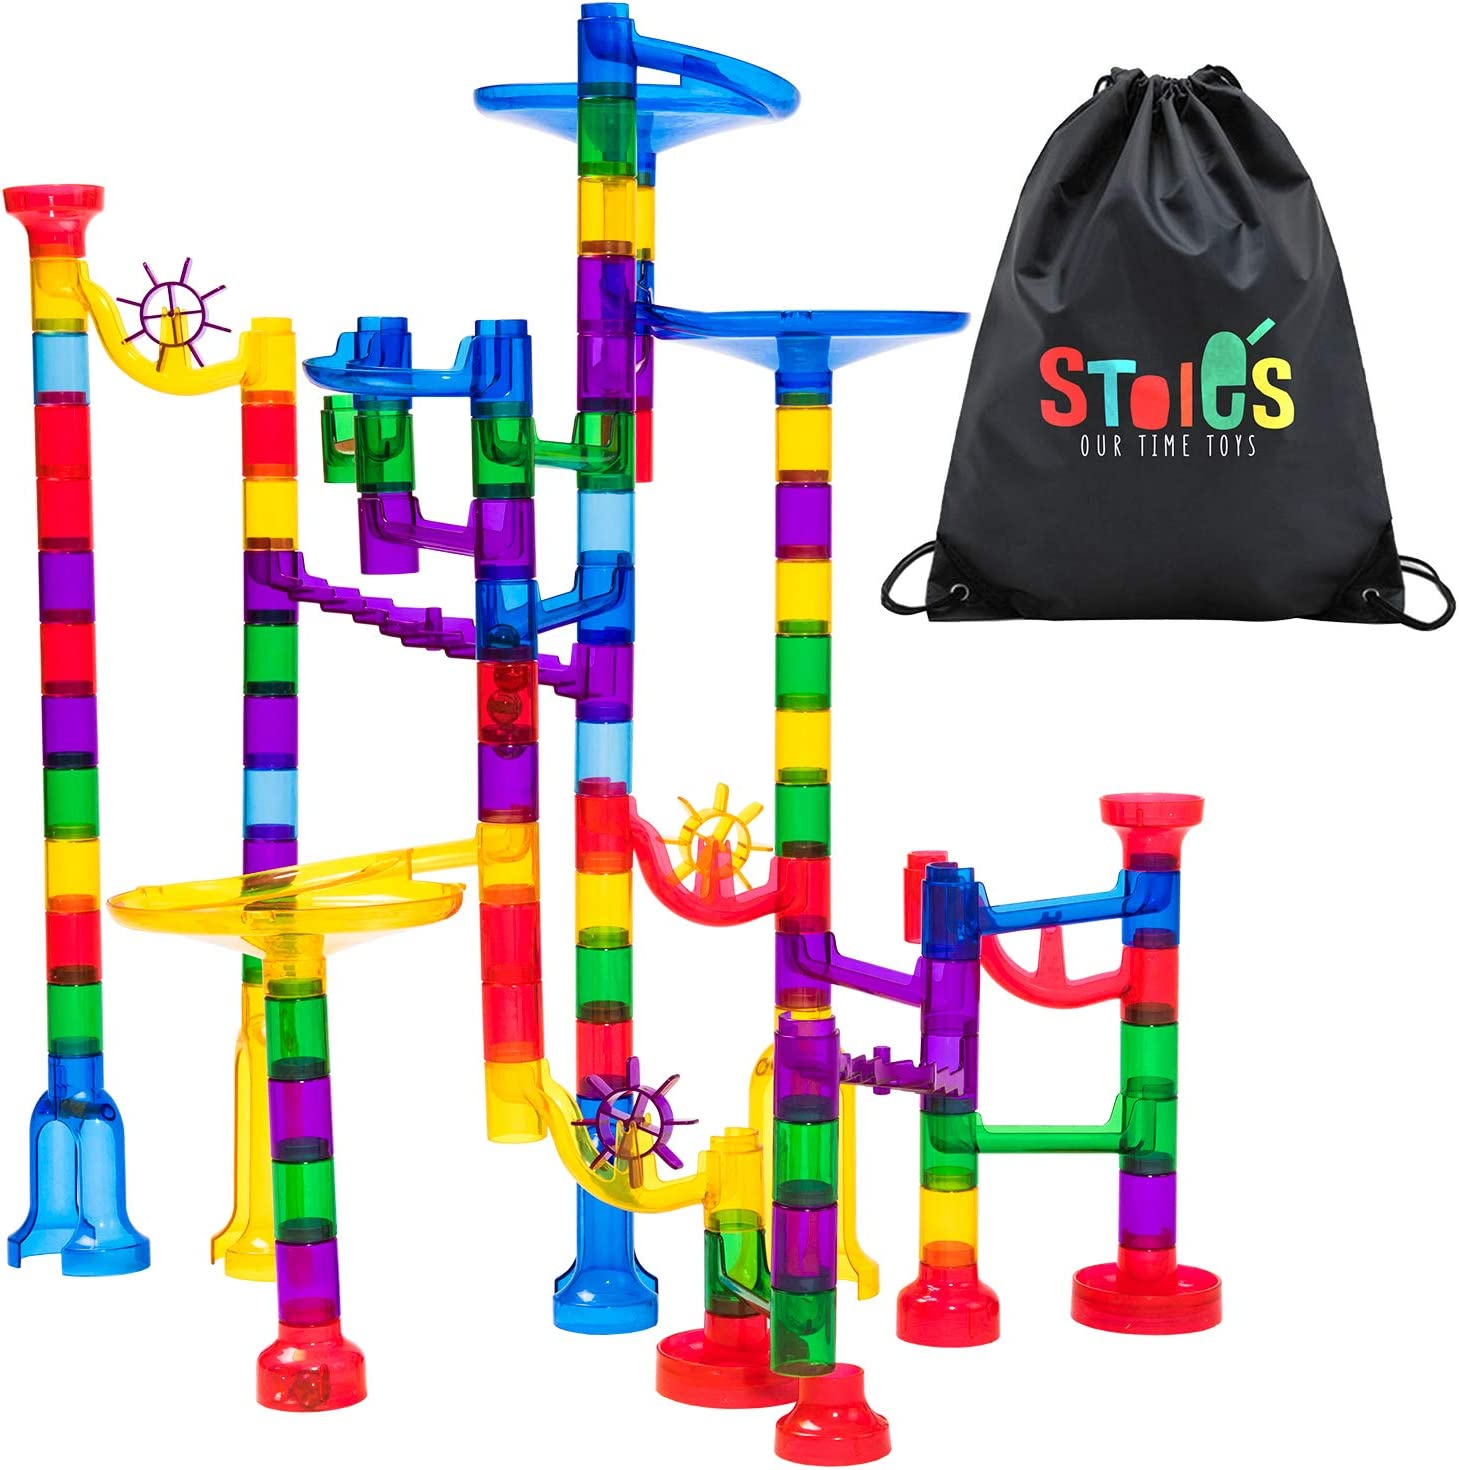 Translucent Marble Maze Race Game Set--109Pcs Colorful Educational Construction Maze Block Toy Set for Kids Parent-Child Game Wekity Marble Run Track Toy Set Colorful